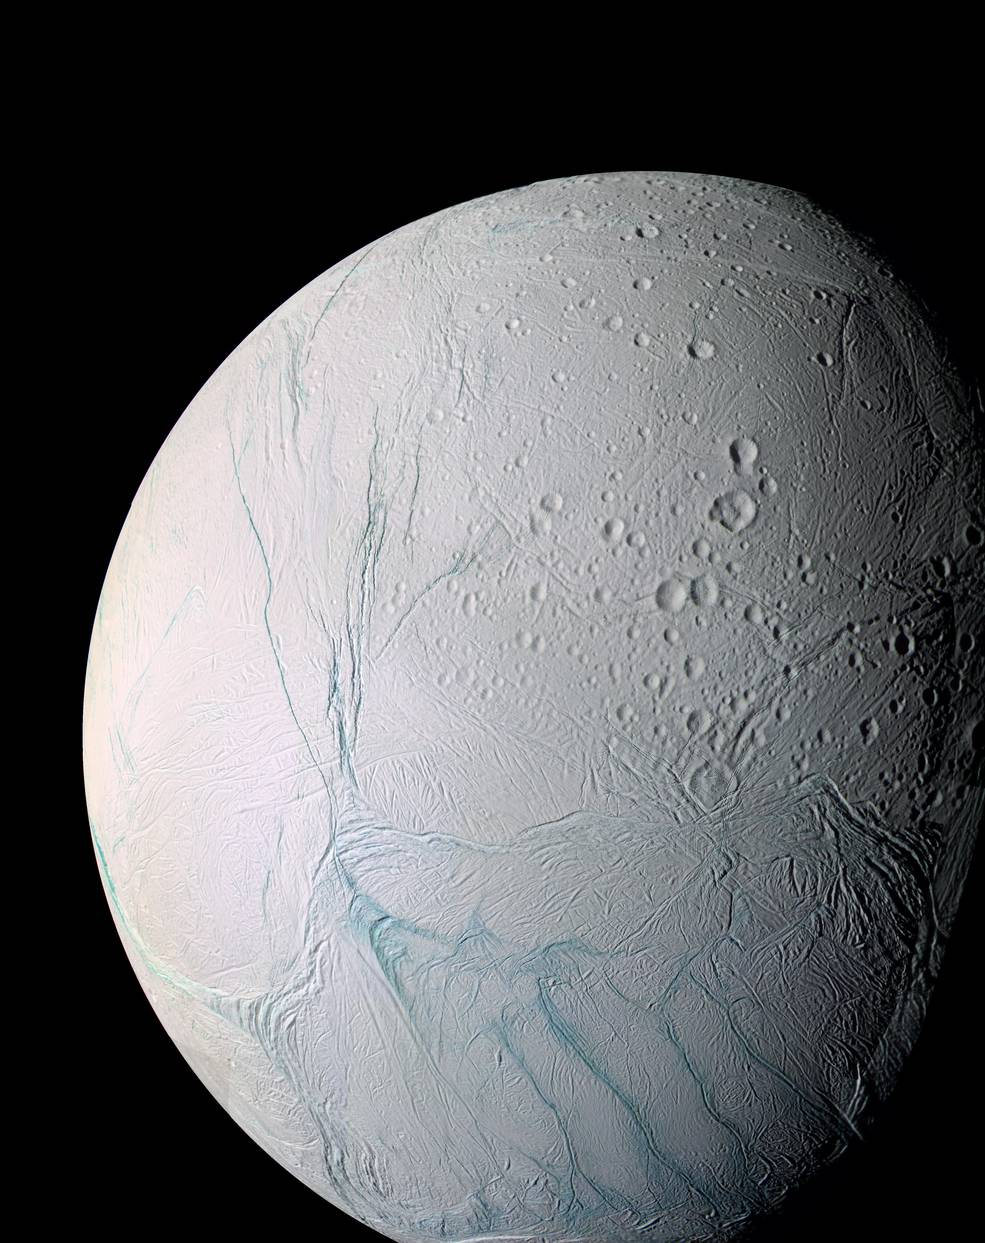 Tiger Stripes on Enceladus reveals Saturn moon to be much warmer and habitable than previously thought